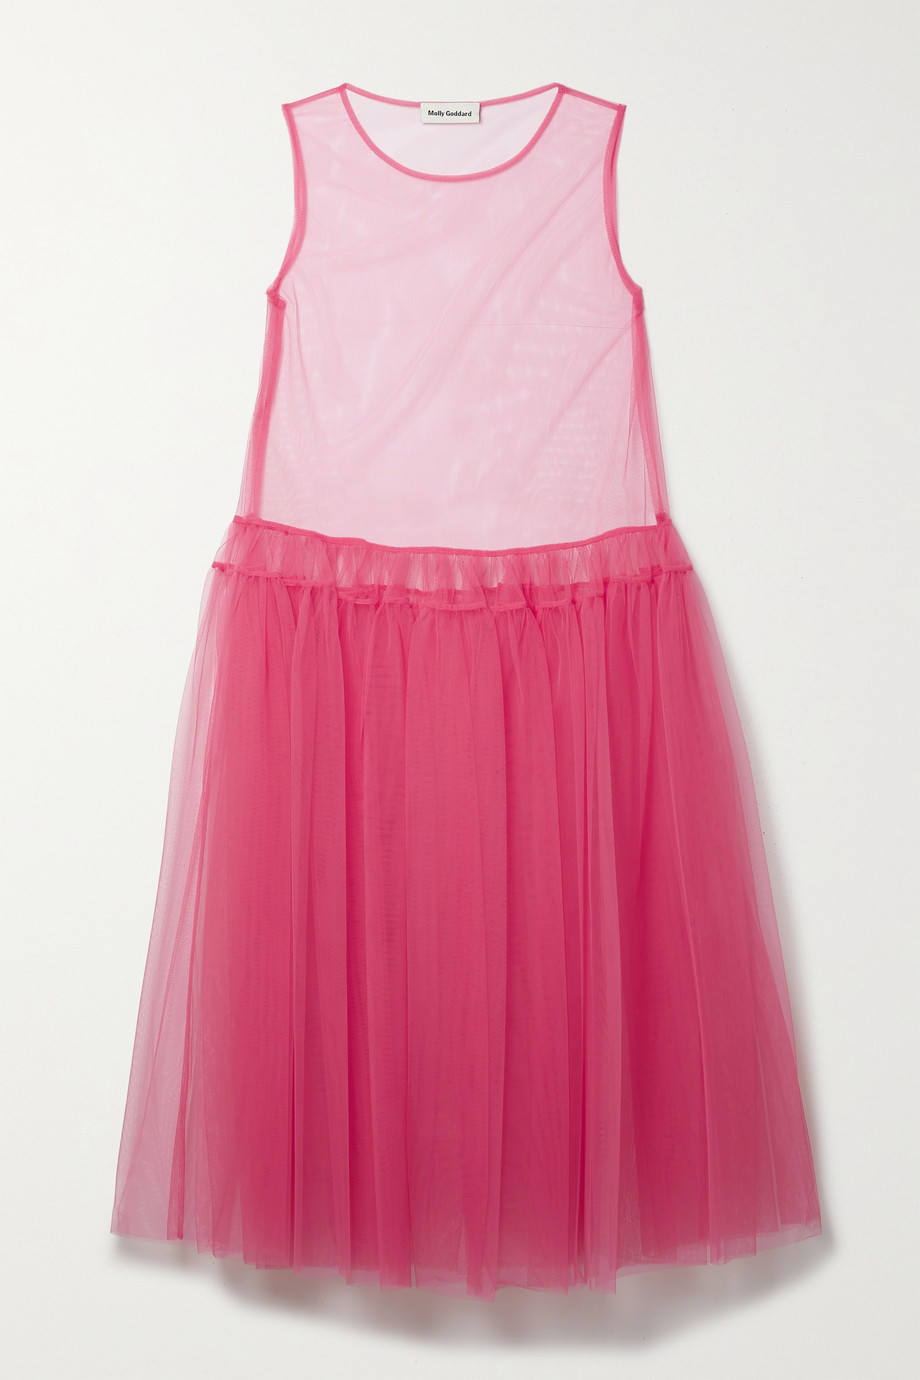 MOLLY GODDARD Ally tiered tulle midi dress